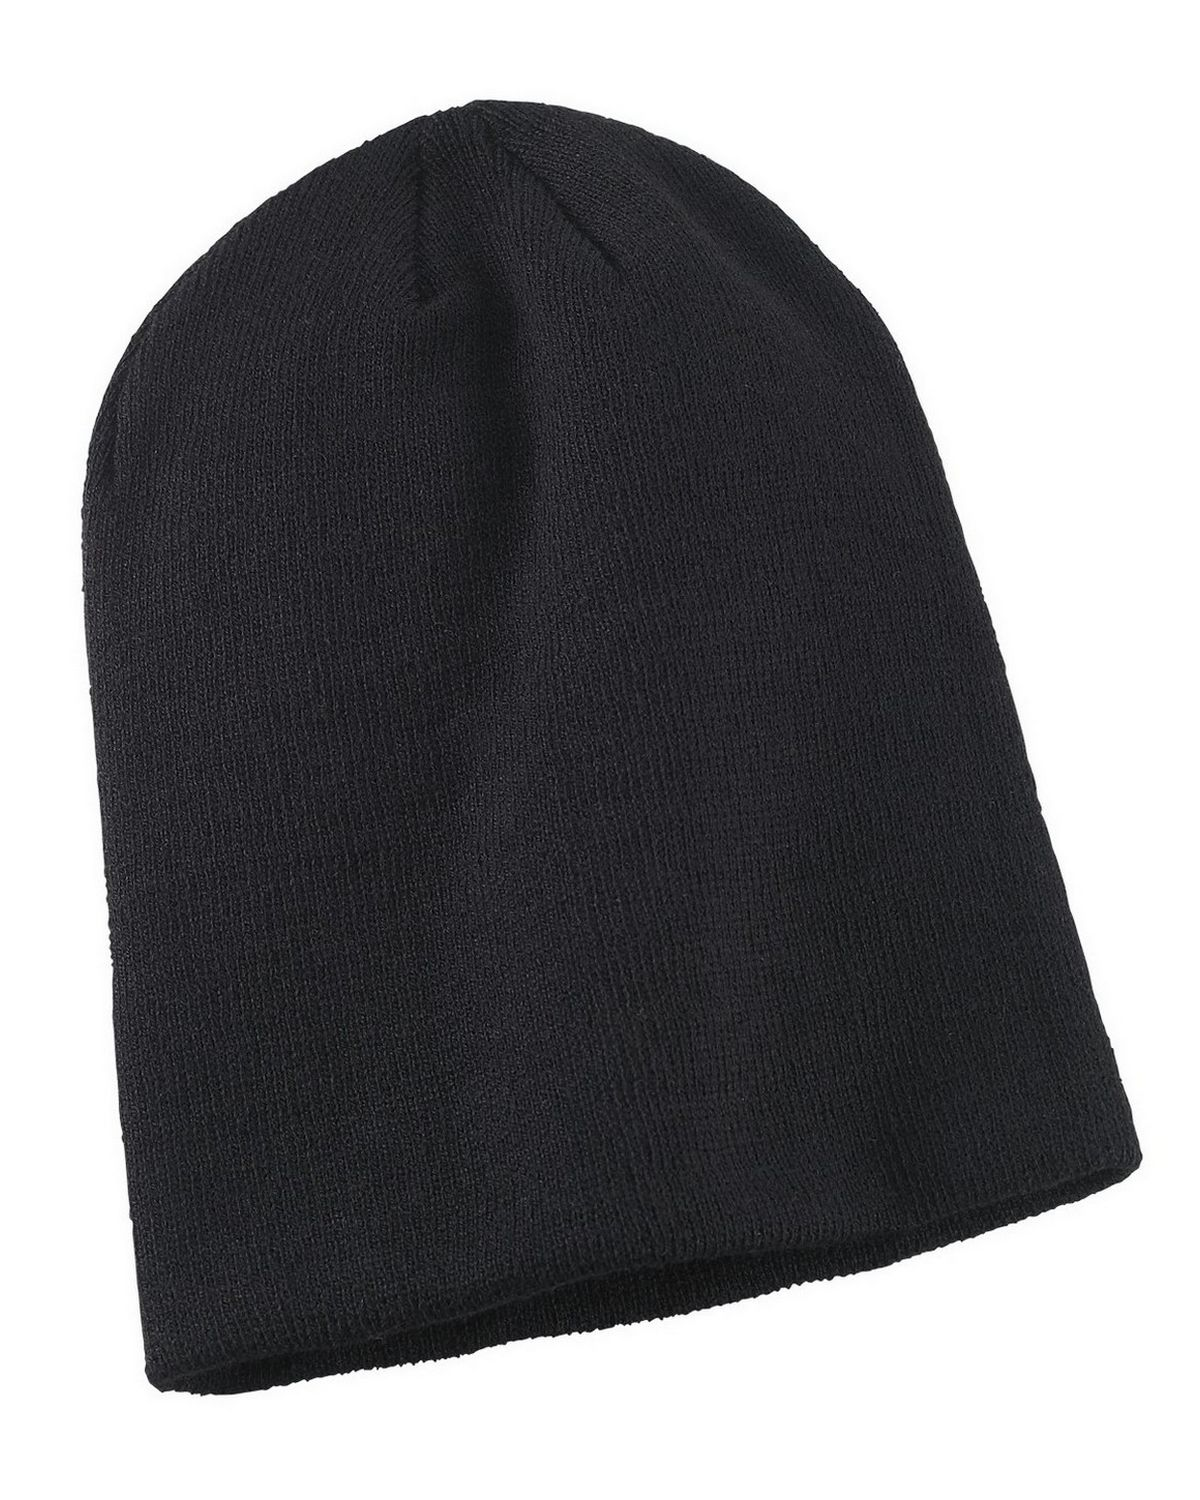 Big Accessories BA519 Slouch Beanie - Black - One Size BA519